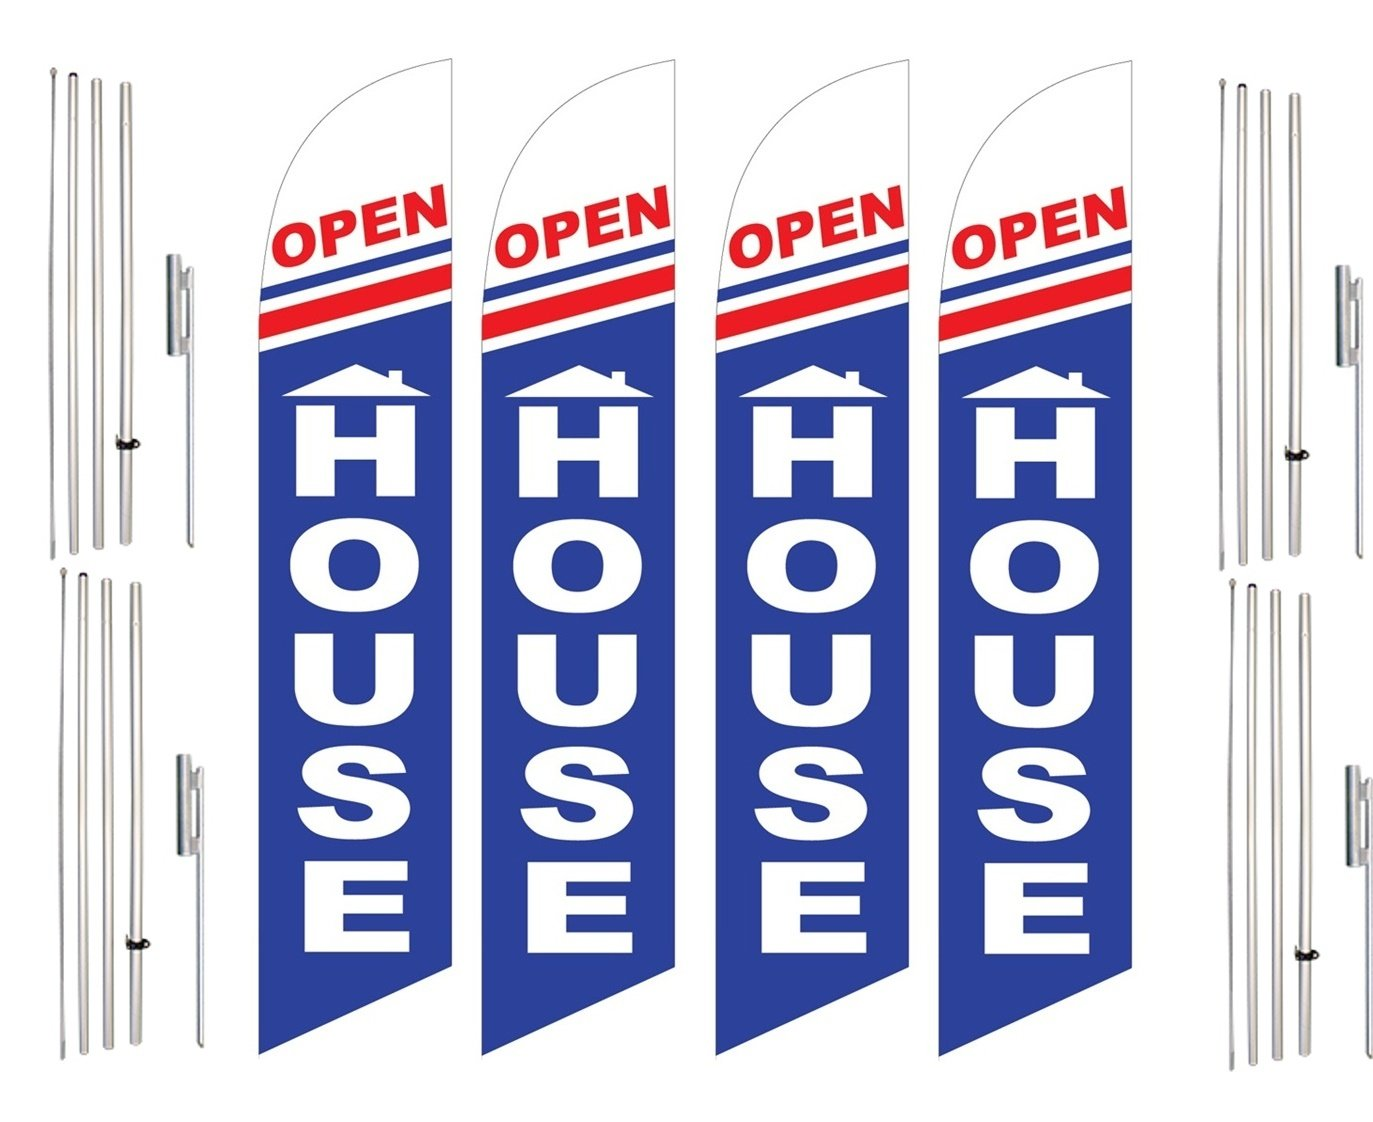 Windless Swooper Flag & Pole Kit 4 Pack OPEN HOUSE Home Red White Blue